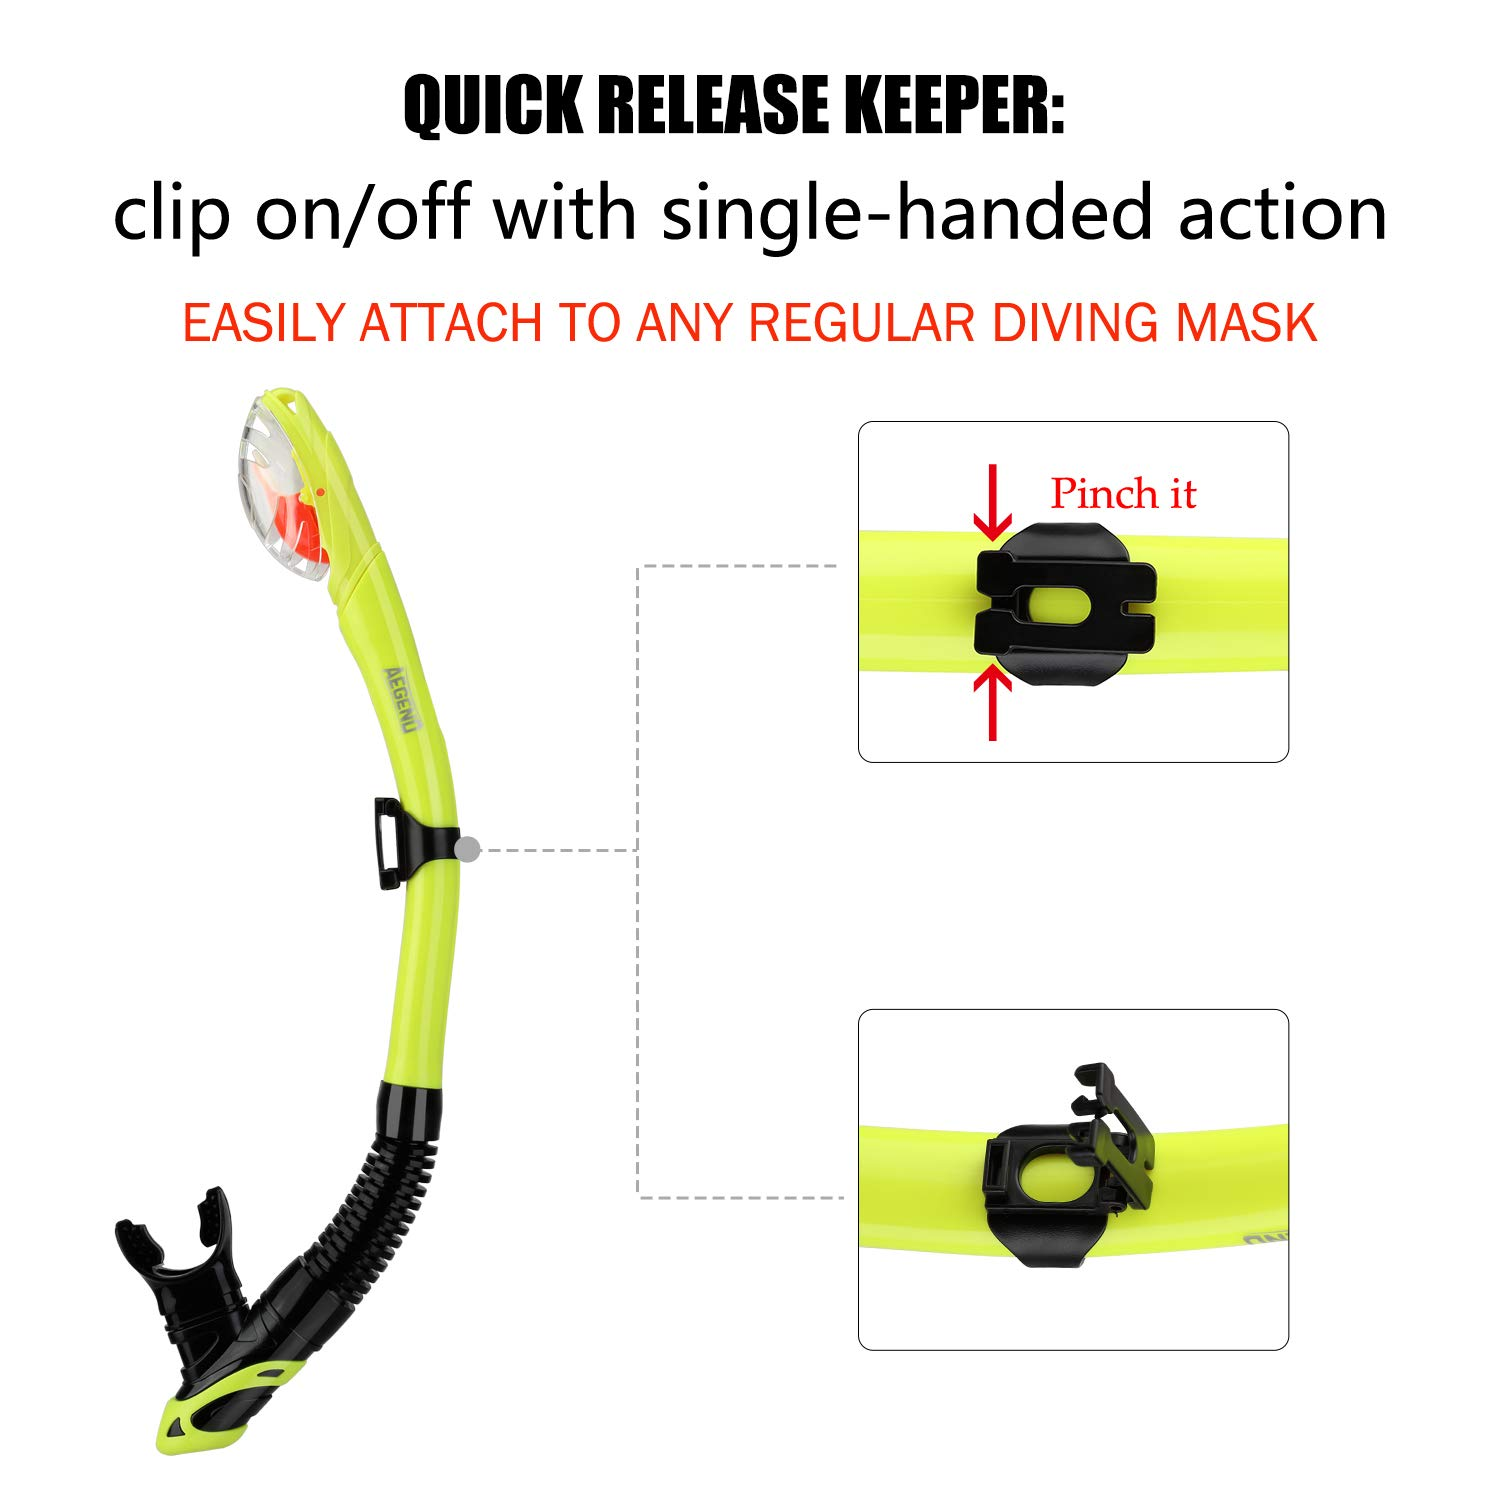 Dive Mask Easy-Breath Free Diving Snorkel for Snorkeling Scuba Diving Freediving Swimming Aegend Dry Snorkel with Top Dry Valve and Food-Grade Silicone Mouthpiece for Adult Youth